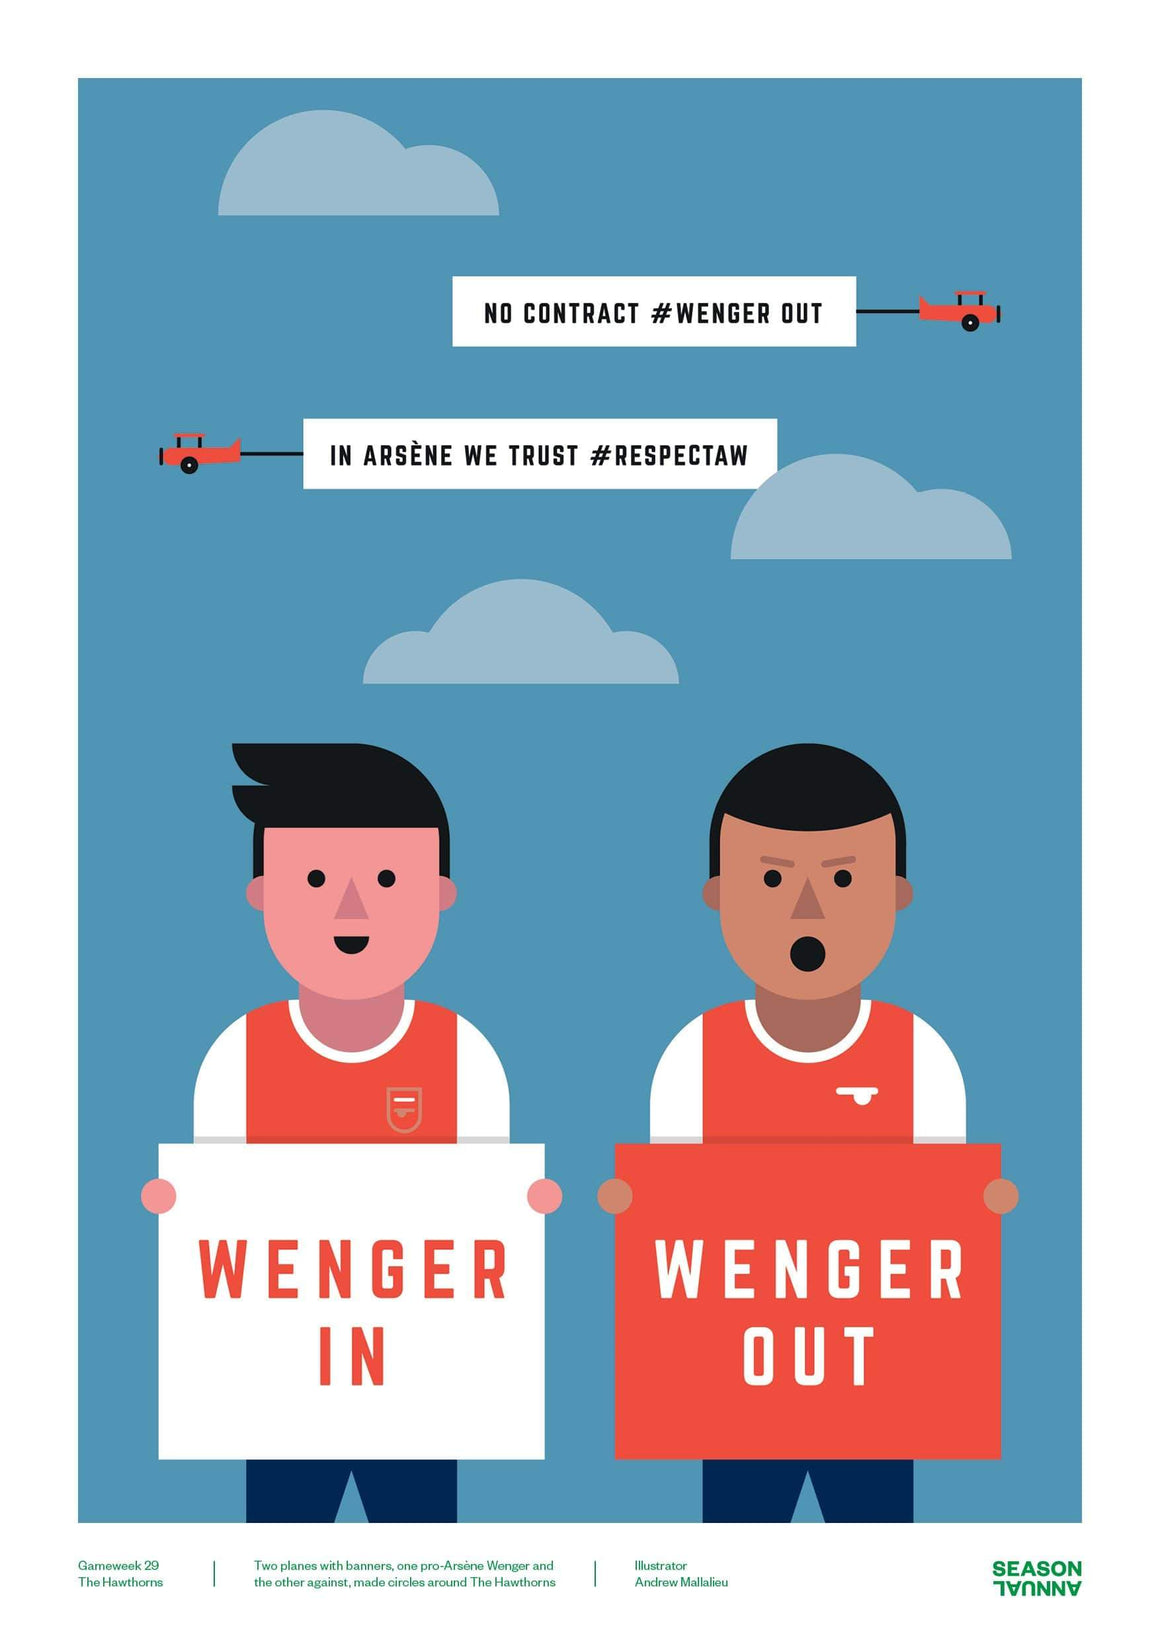 Season Annual Wenger In or Wenger Out poster